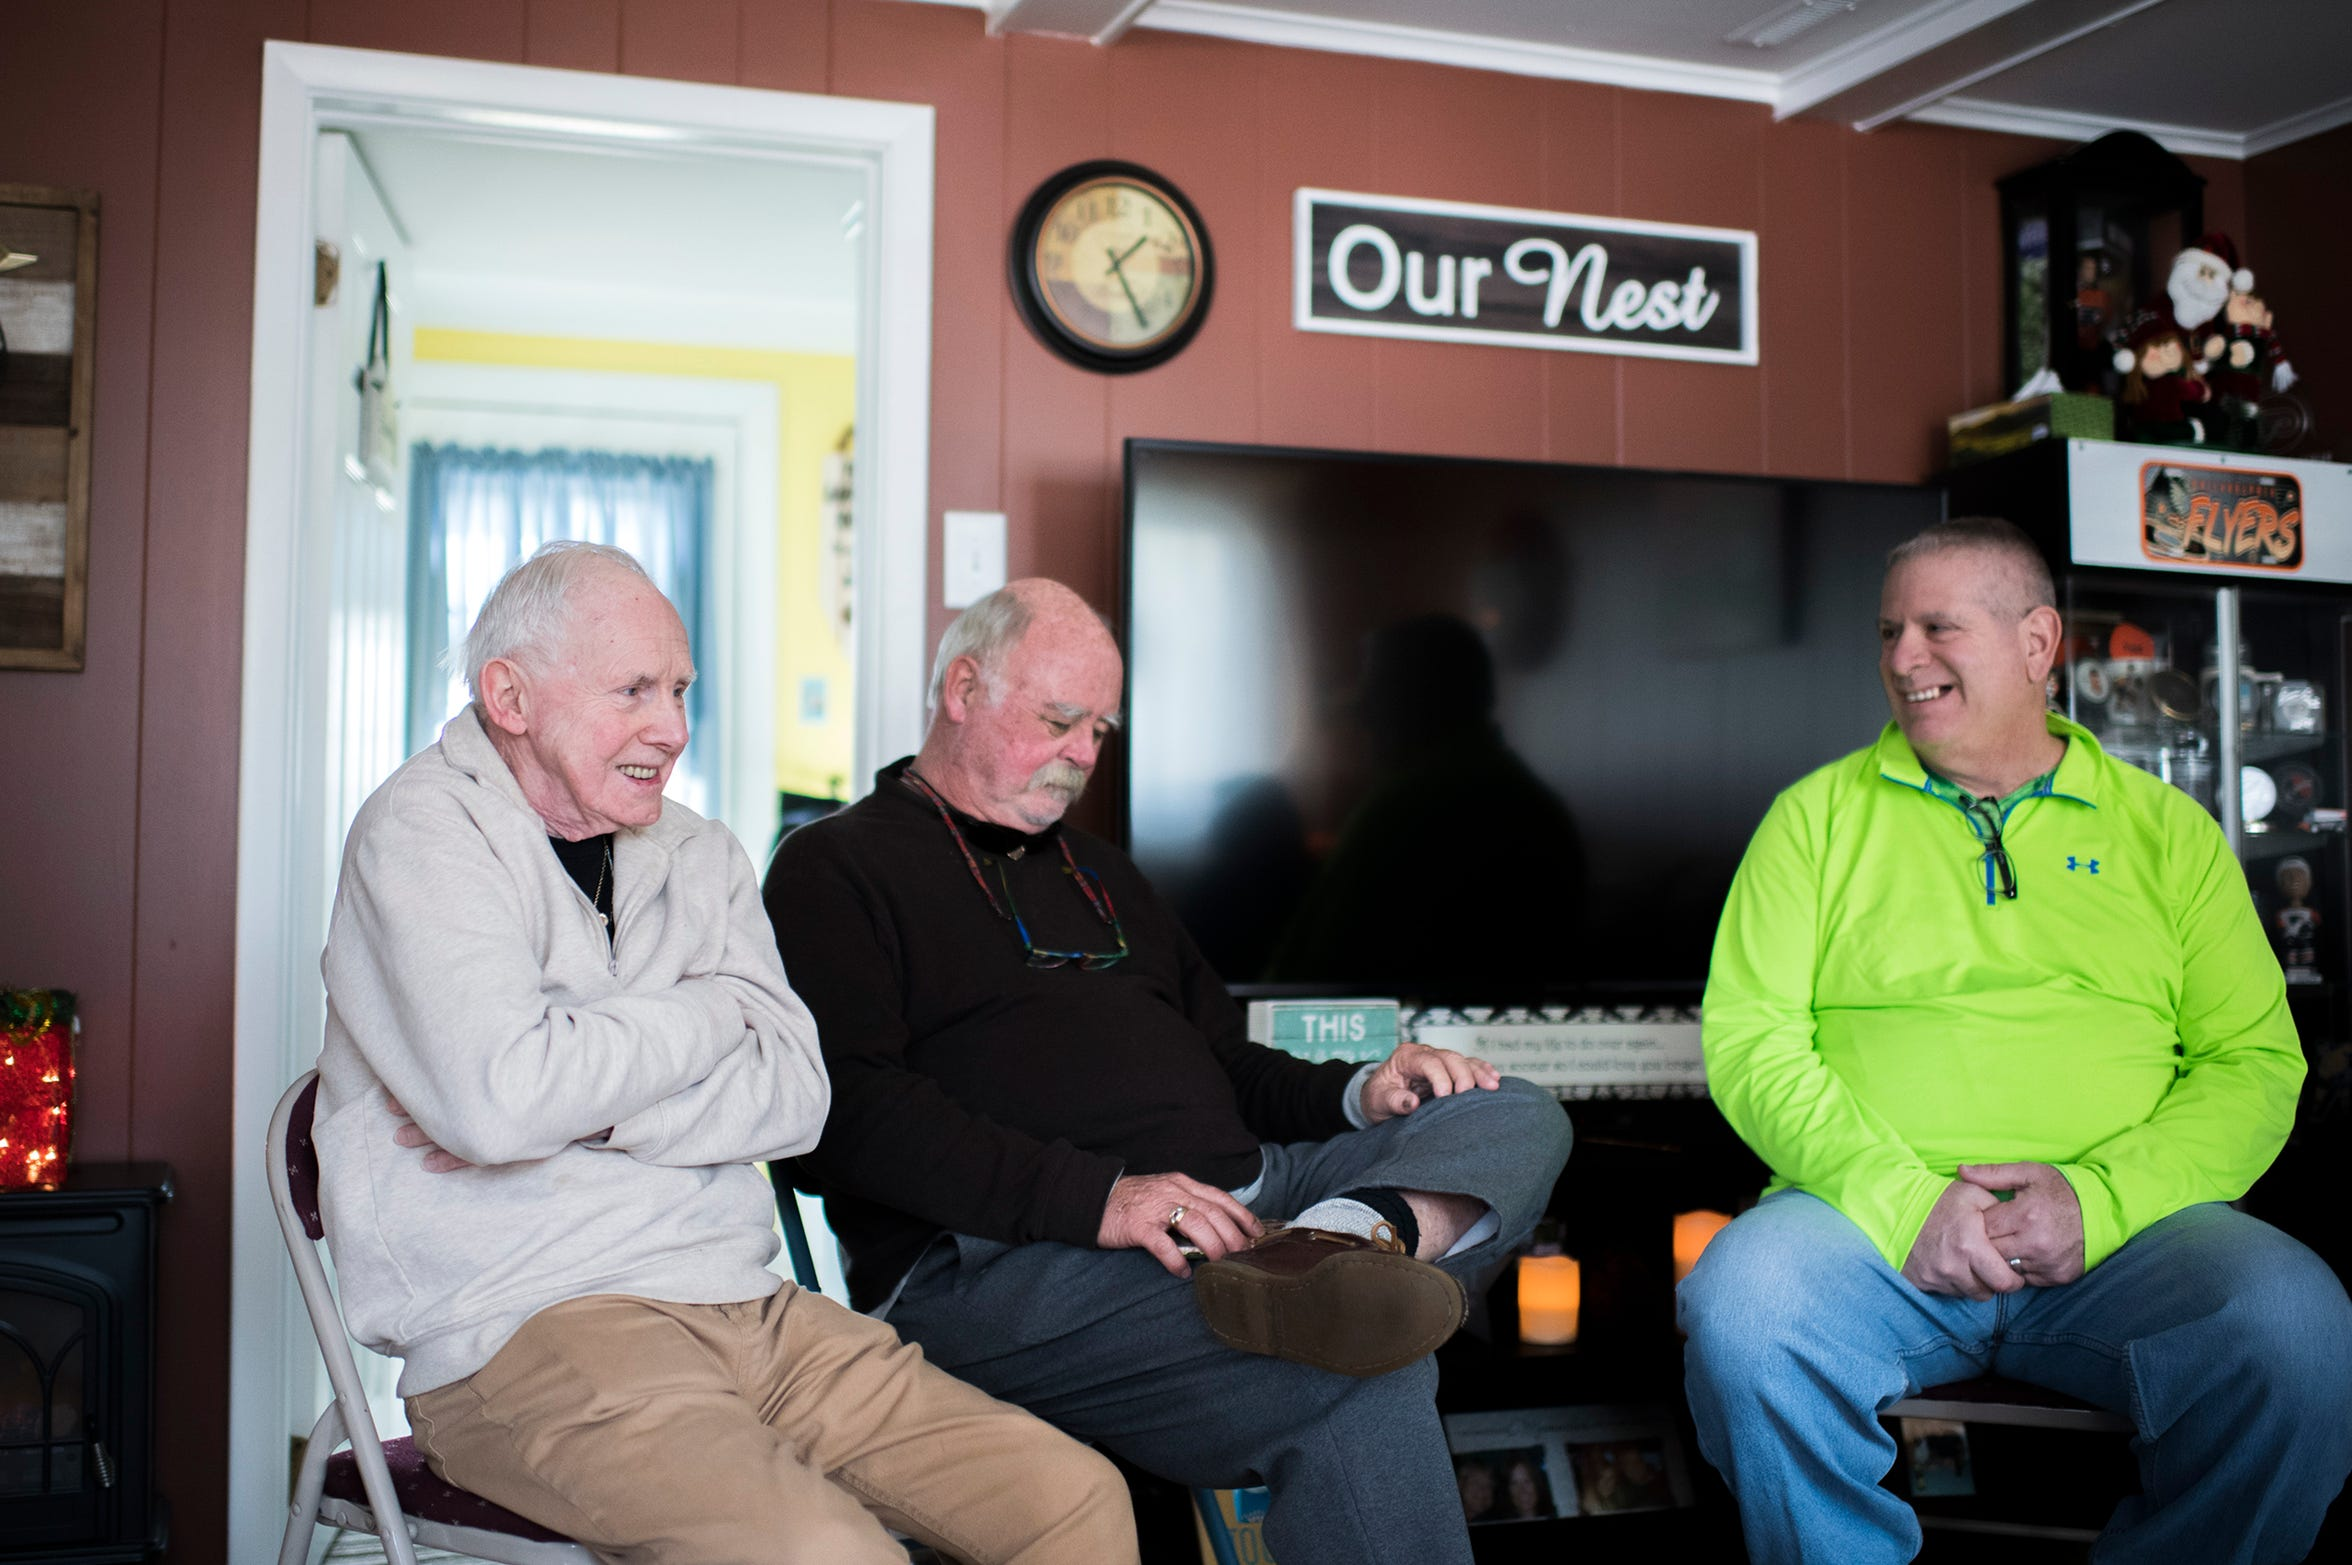 Jerry Callahan, from left, Jay Bryan and Anthony Inverso discuss newly found family relationships Wednesday, Dec. 12, 2018 in Turnersville, N.J.